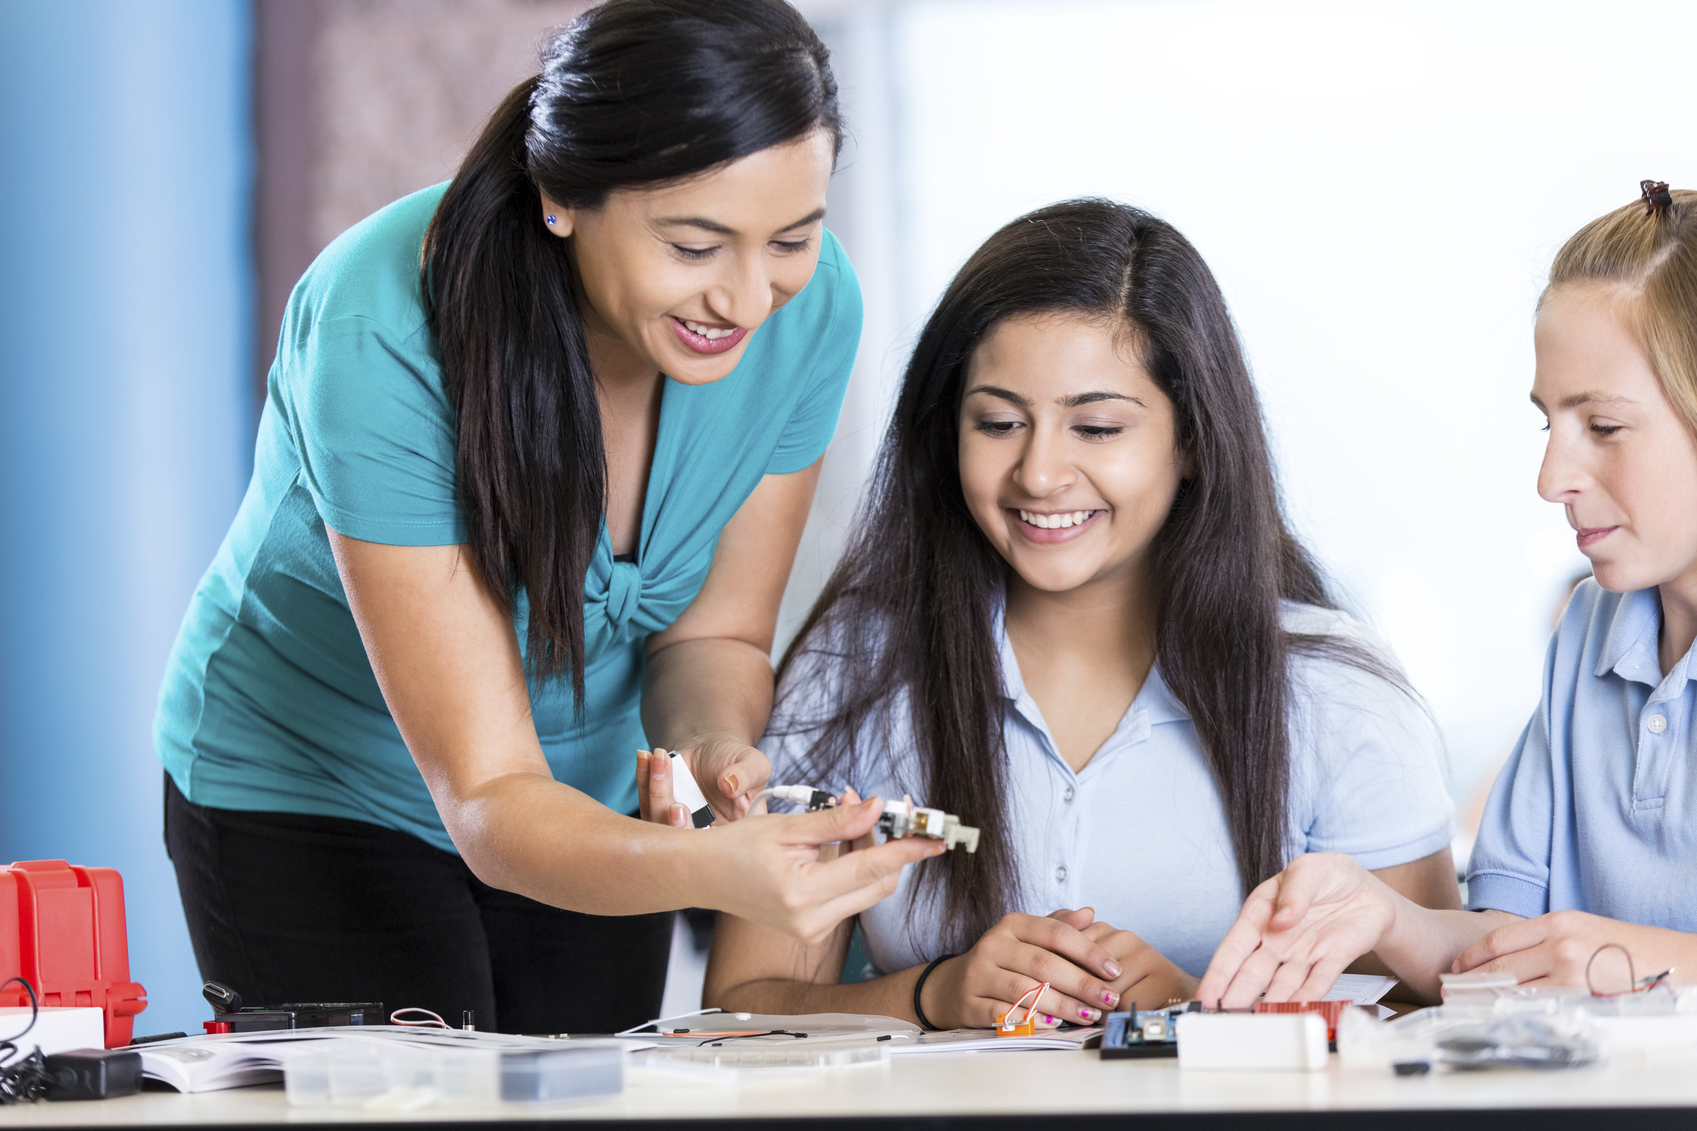 Mid adult Hispanic woman is teaching middle school or junior high school class about audio engineering. Teacher is using electronic or robotic parts to help students create speakers. Preteen Indian and Caucasian girls are smiling while studying STEM. Science, Technology, Engineering, and Math are focus of private school class.